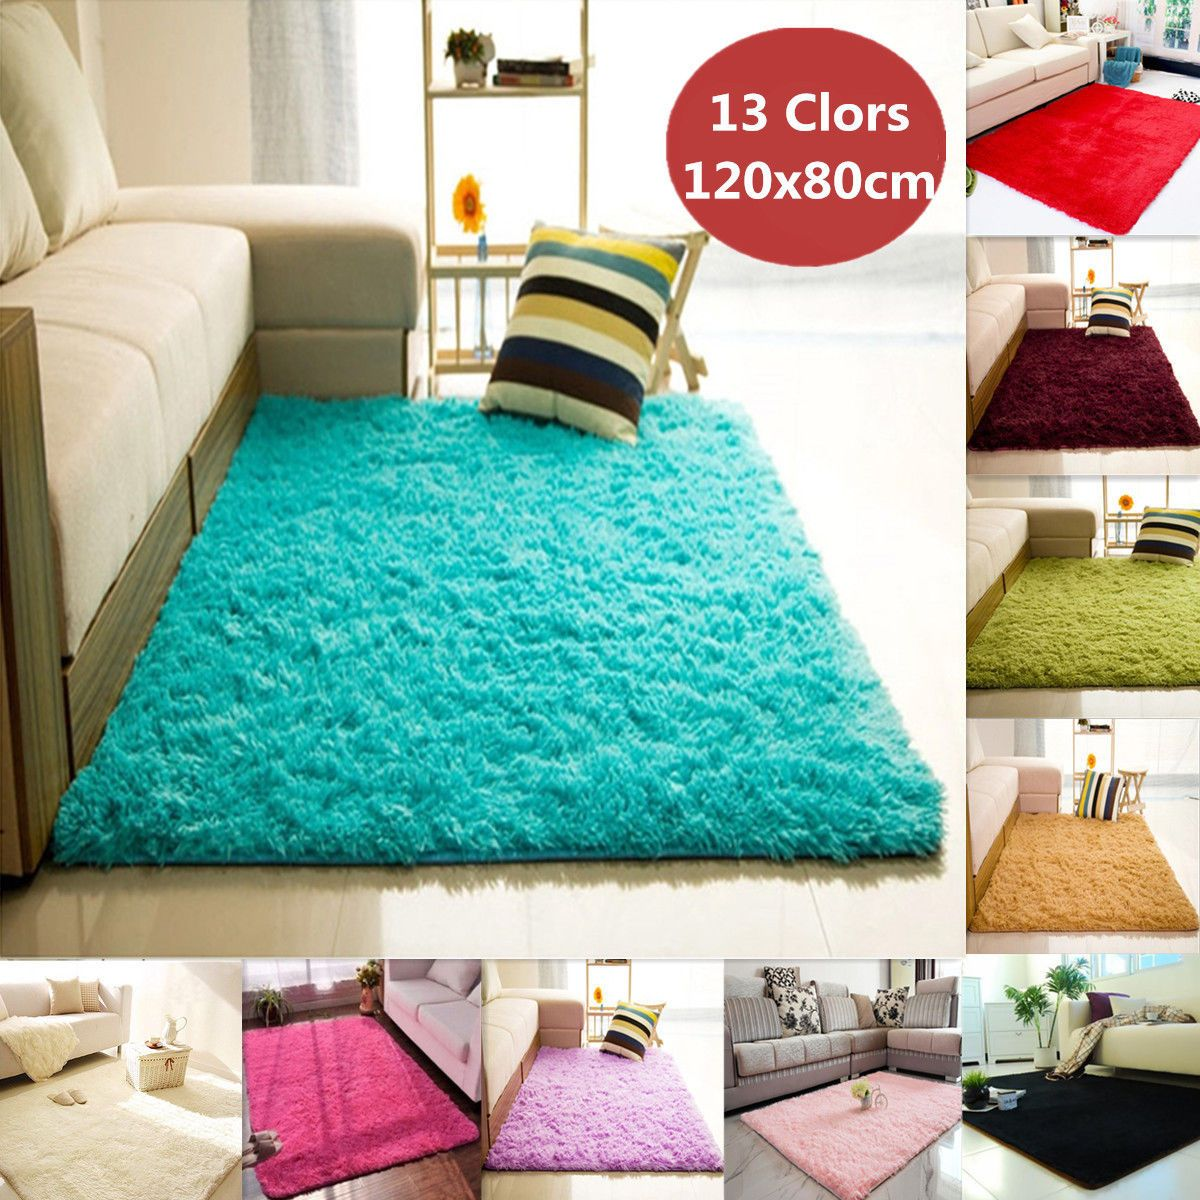 how to clean a white fluffy rug